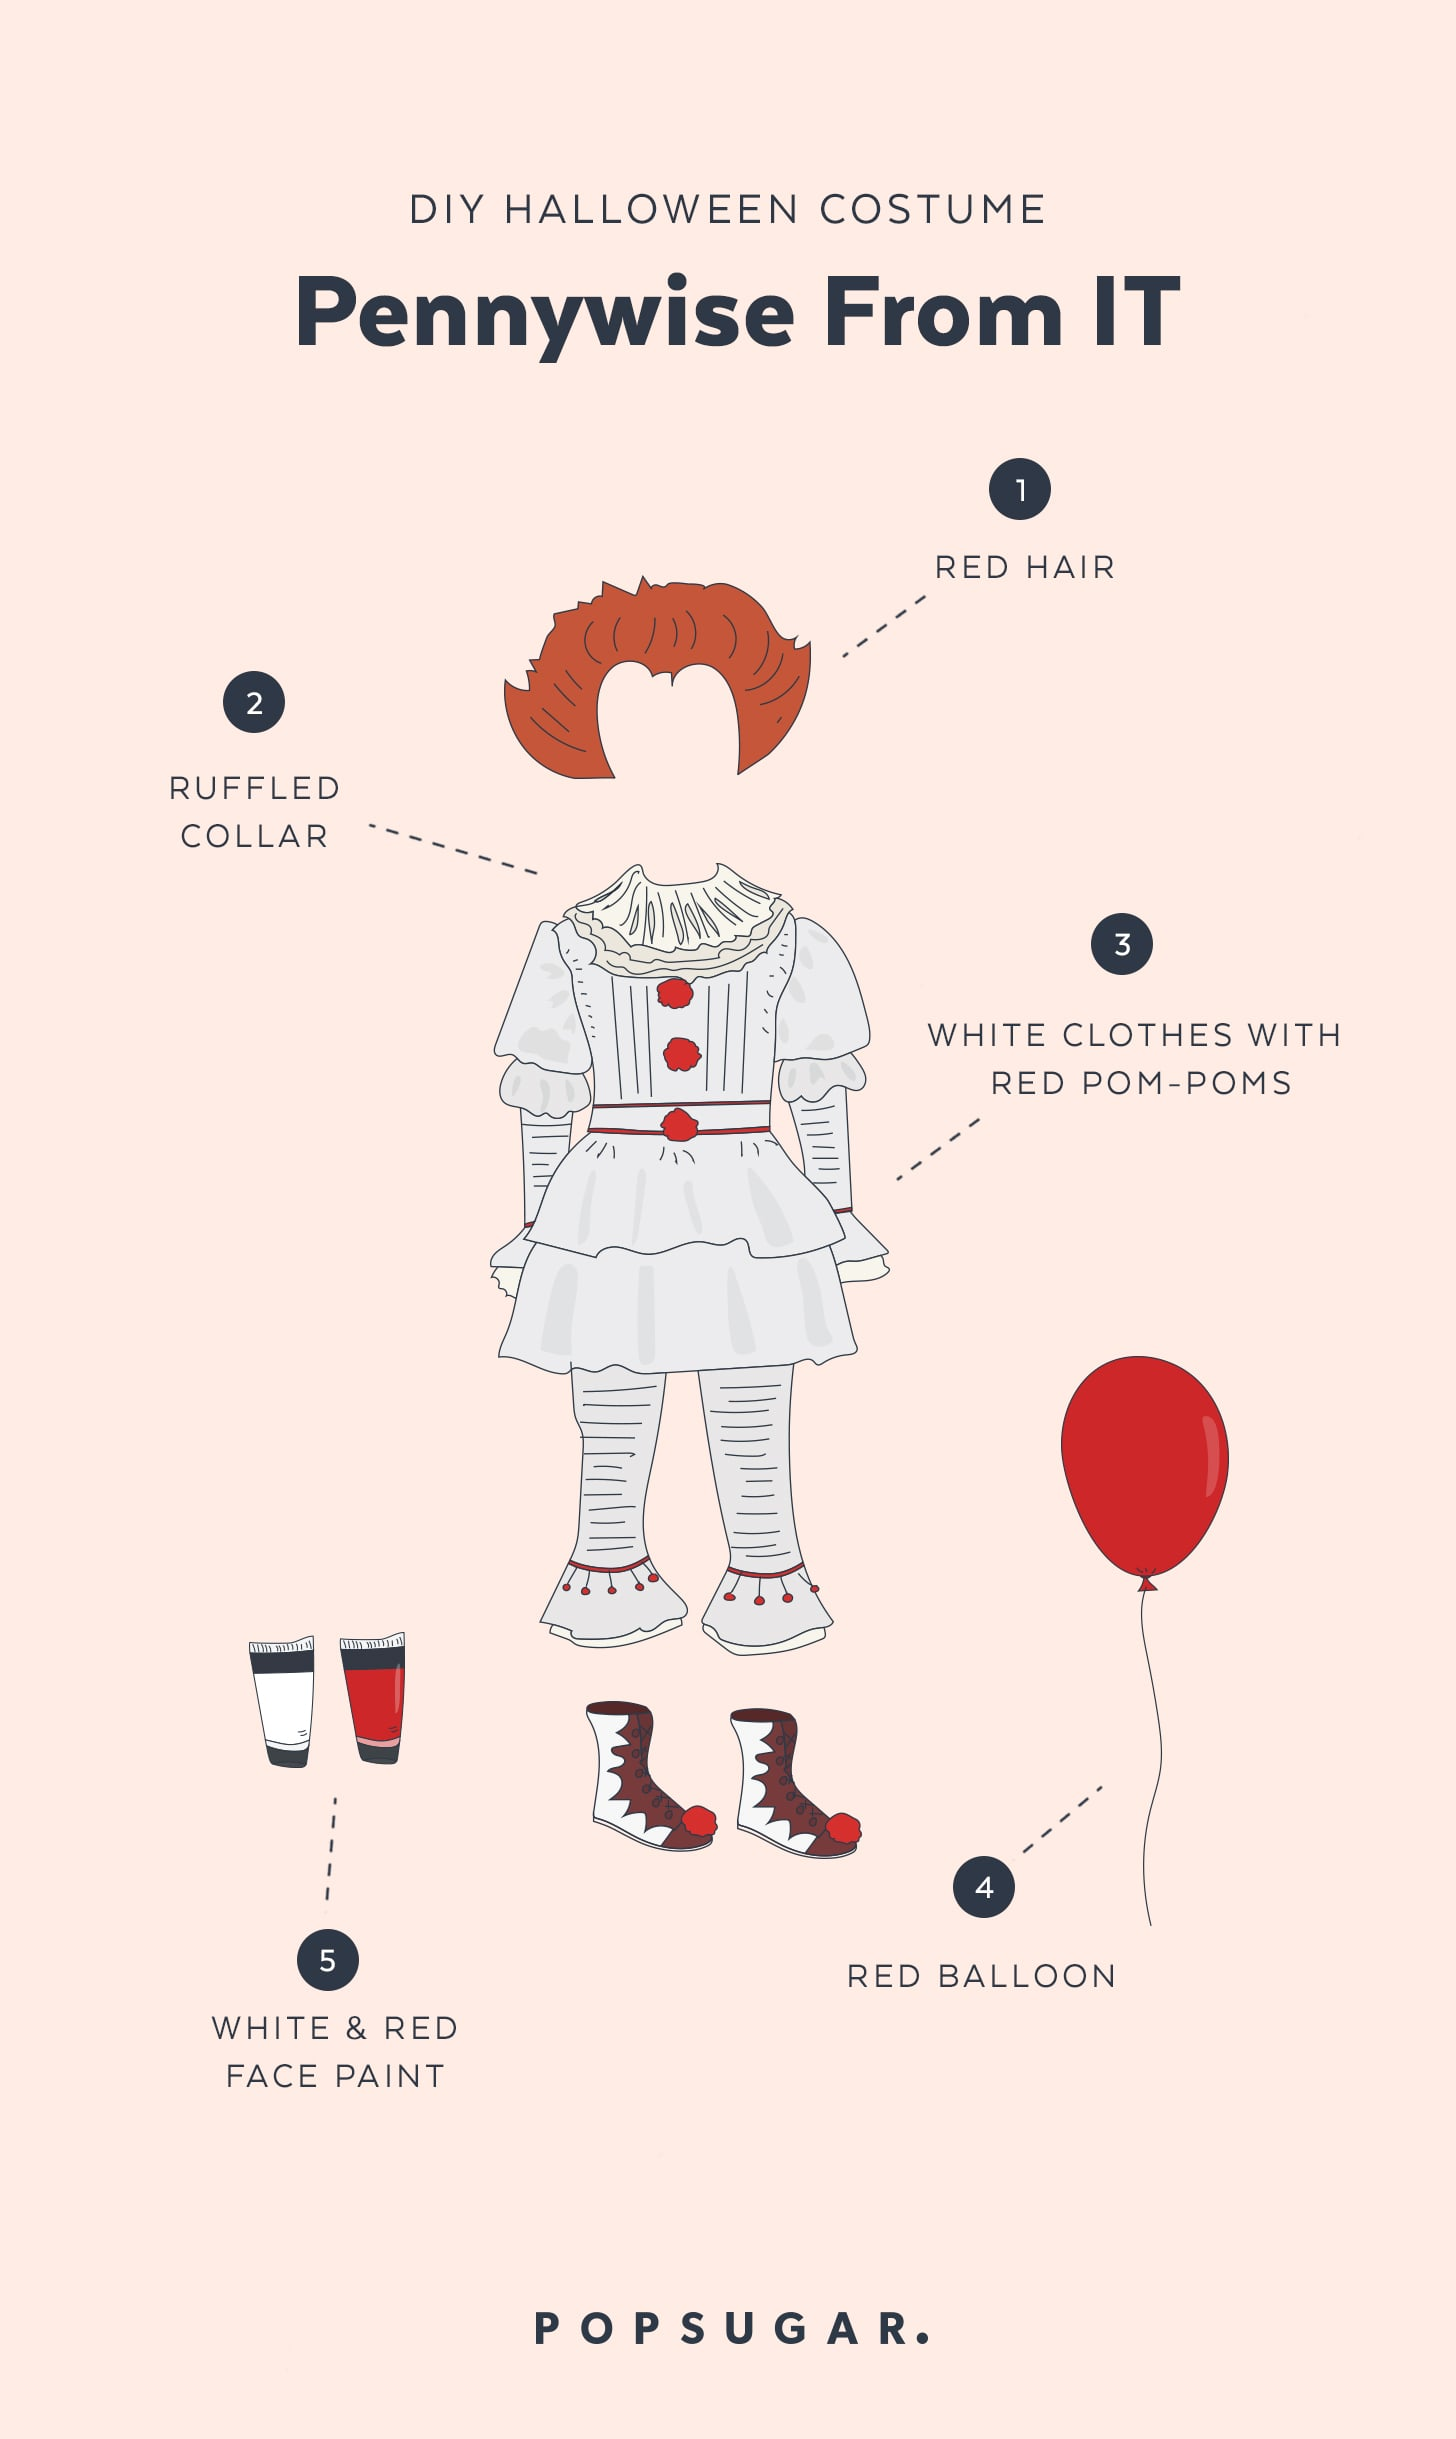 Pennywise from it halloween costume popsugar australia smart living check out the rest of our top 10 halloween costumes for 2017 solutioingenieria Choice Image